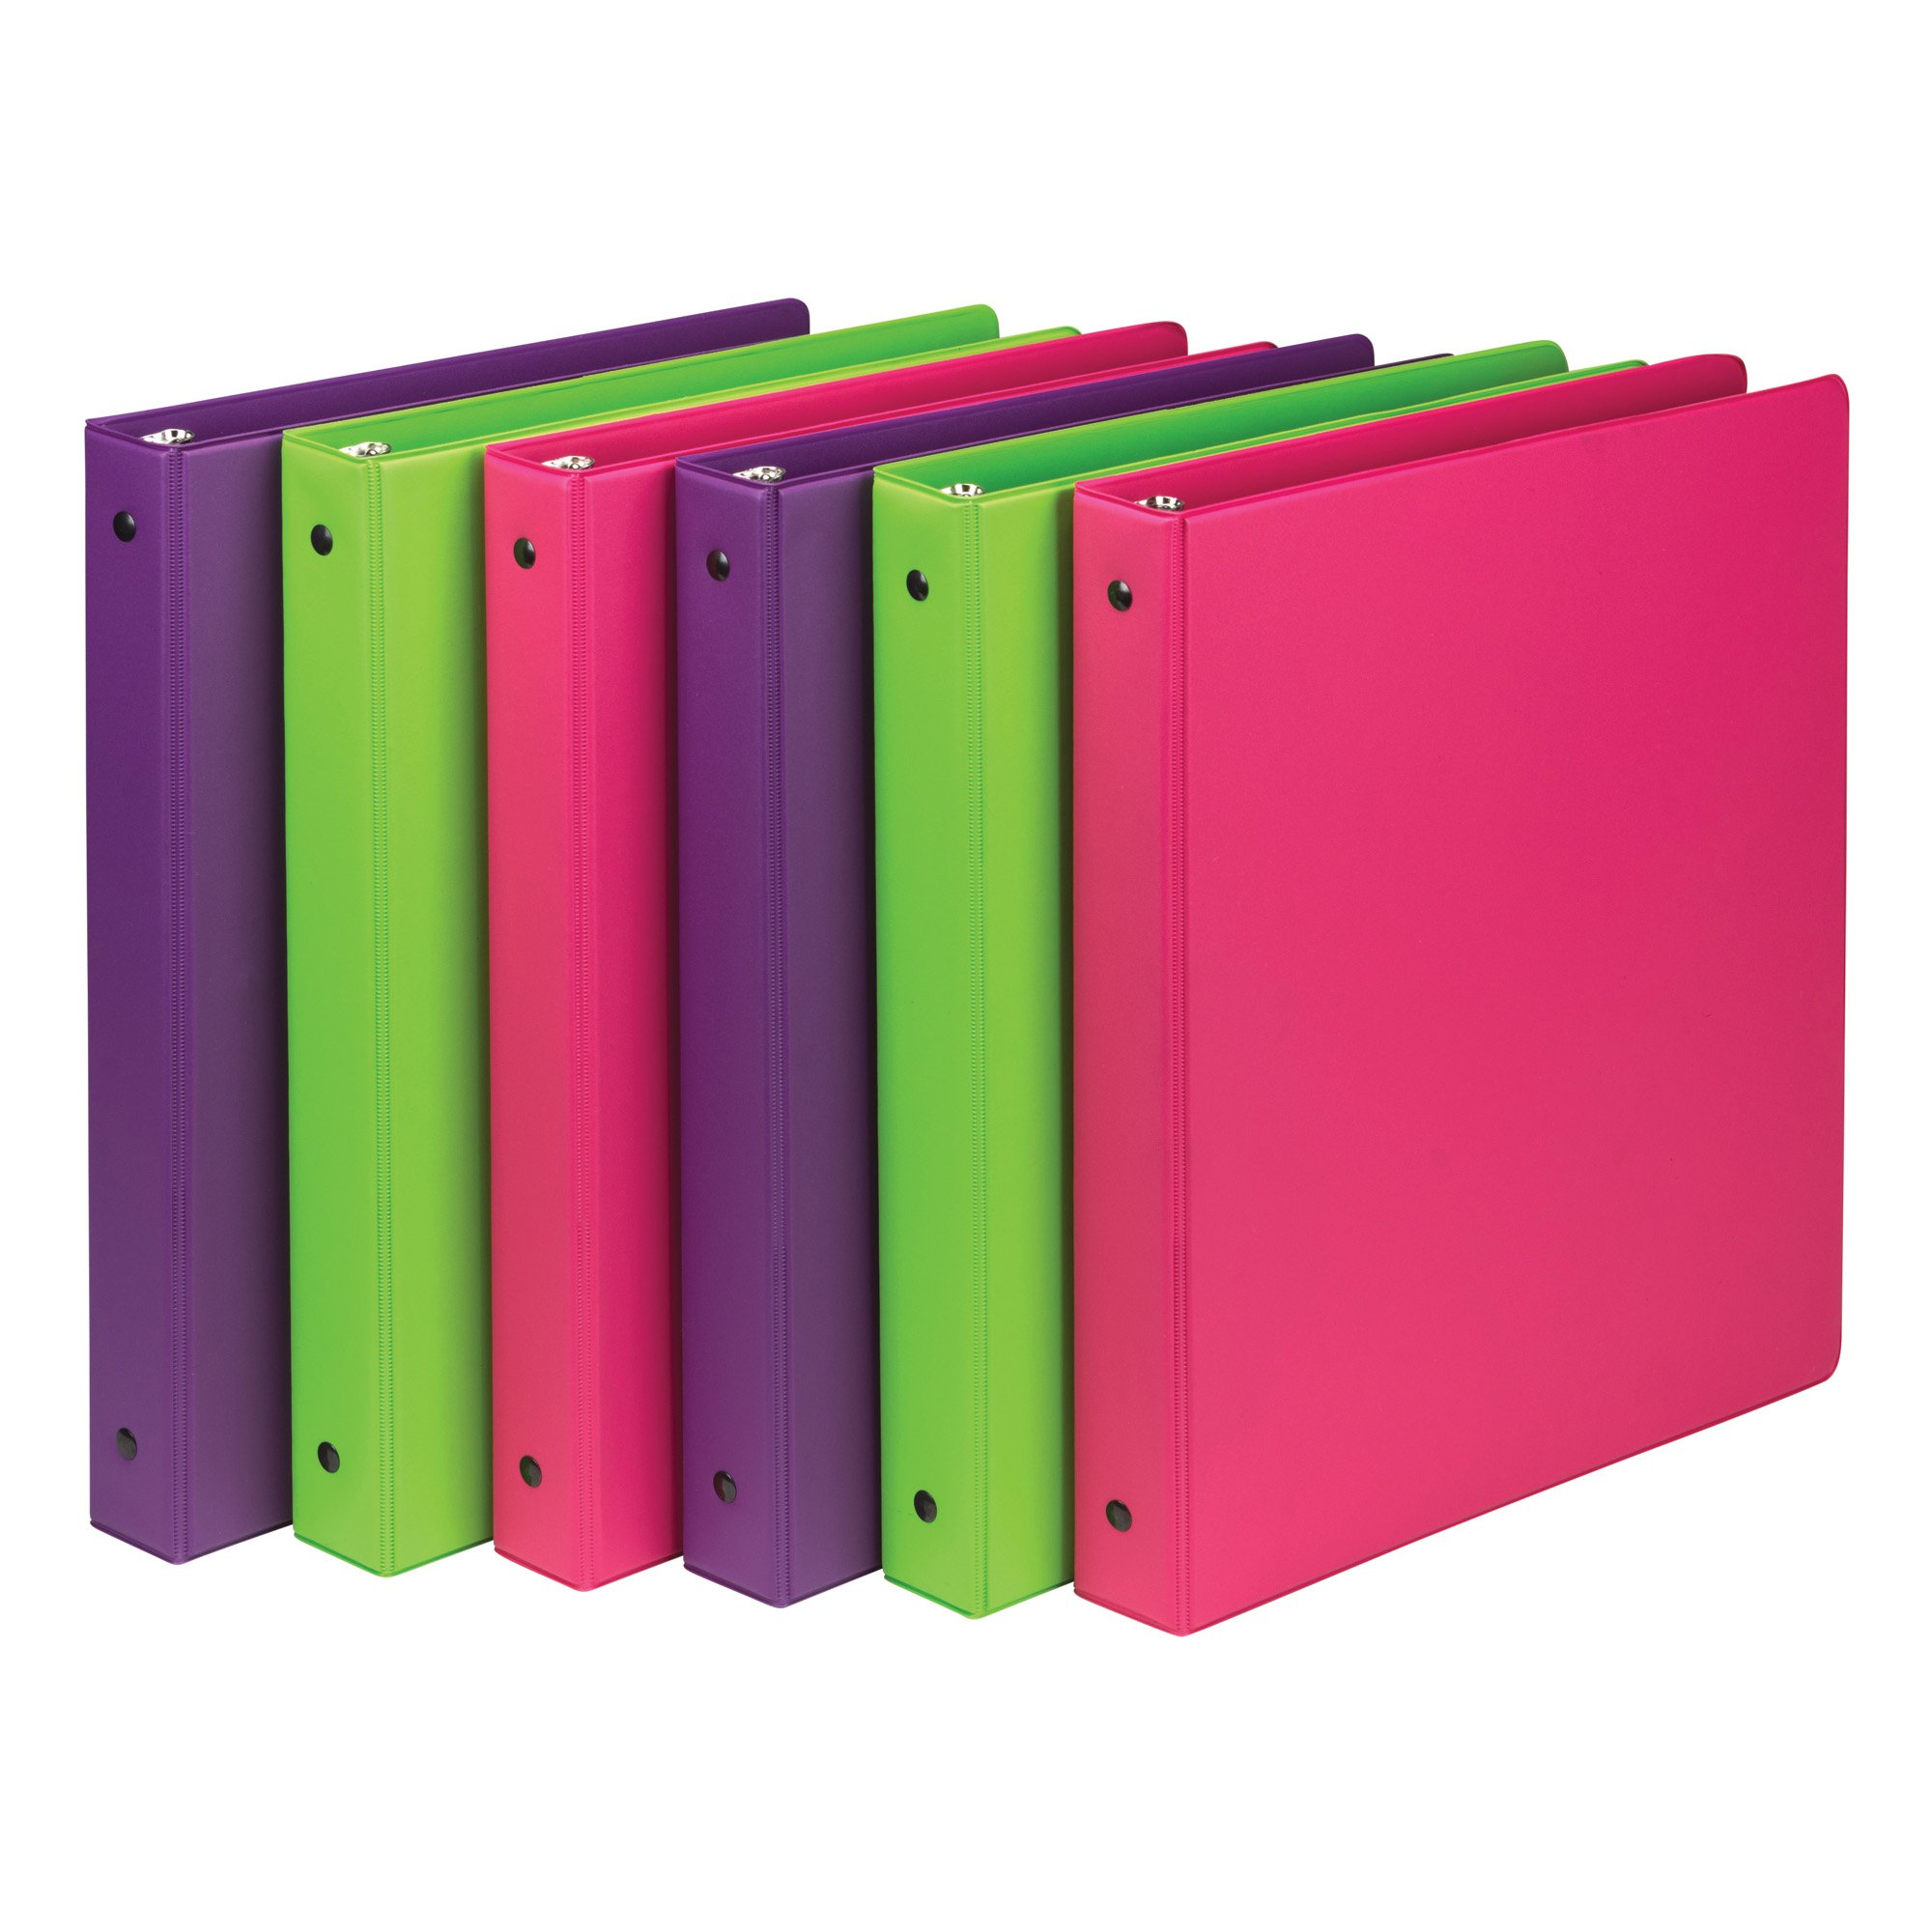 Samsill 1 Inch Round Ring Binders in Fashion Colors, 6 Pack Bundle